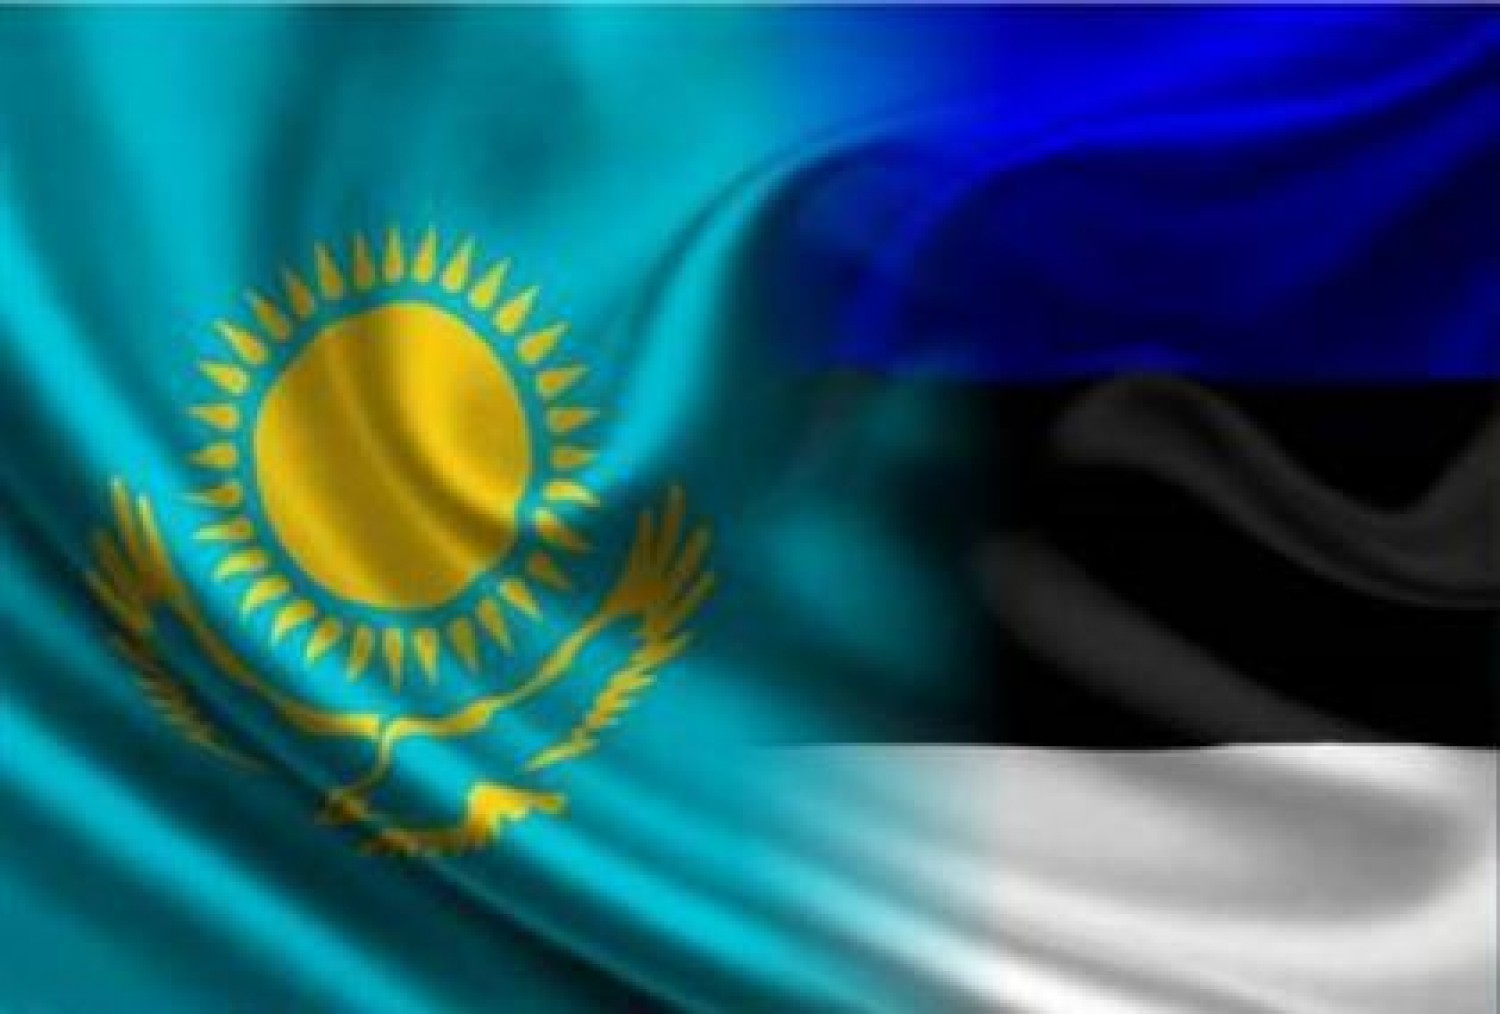 Estonia is one of Kazakhstan's important partners in Northern Europe